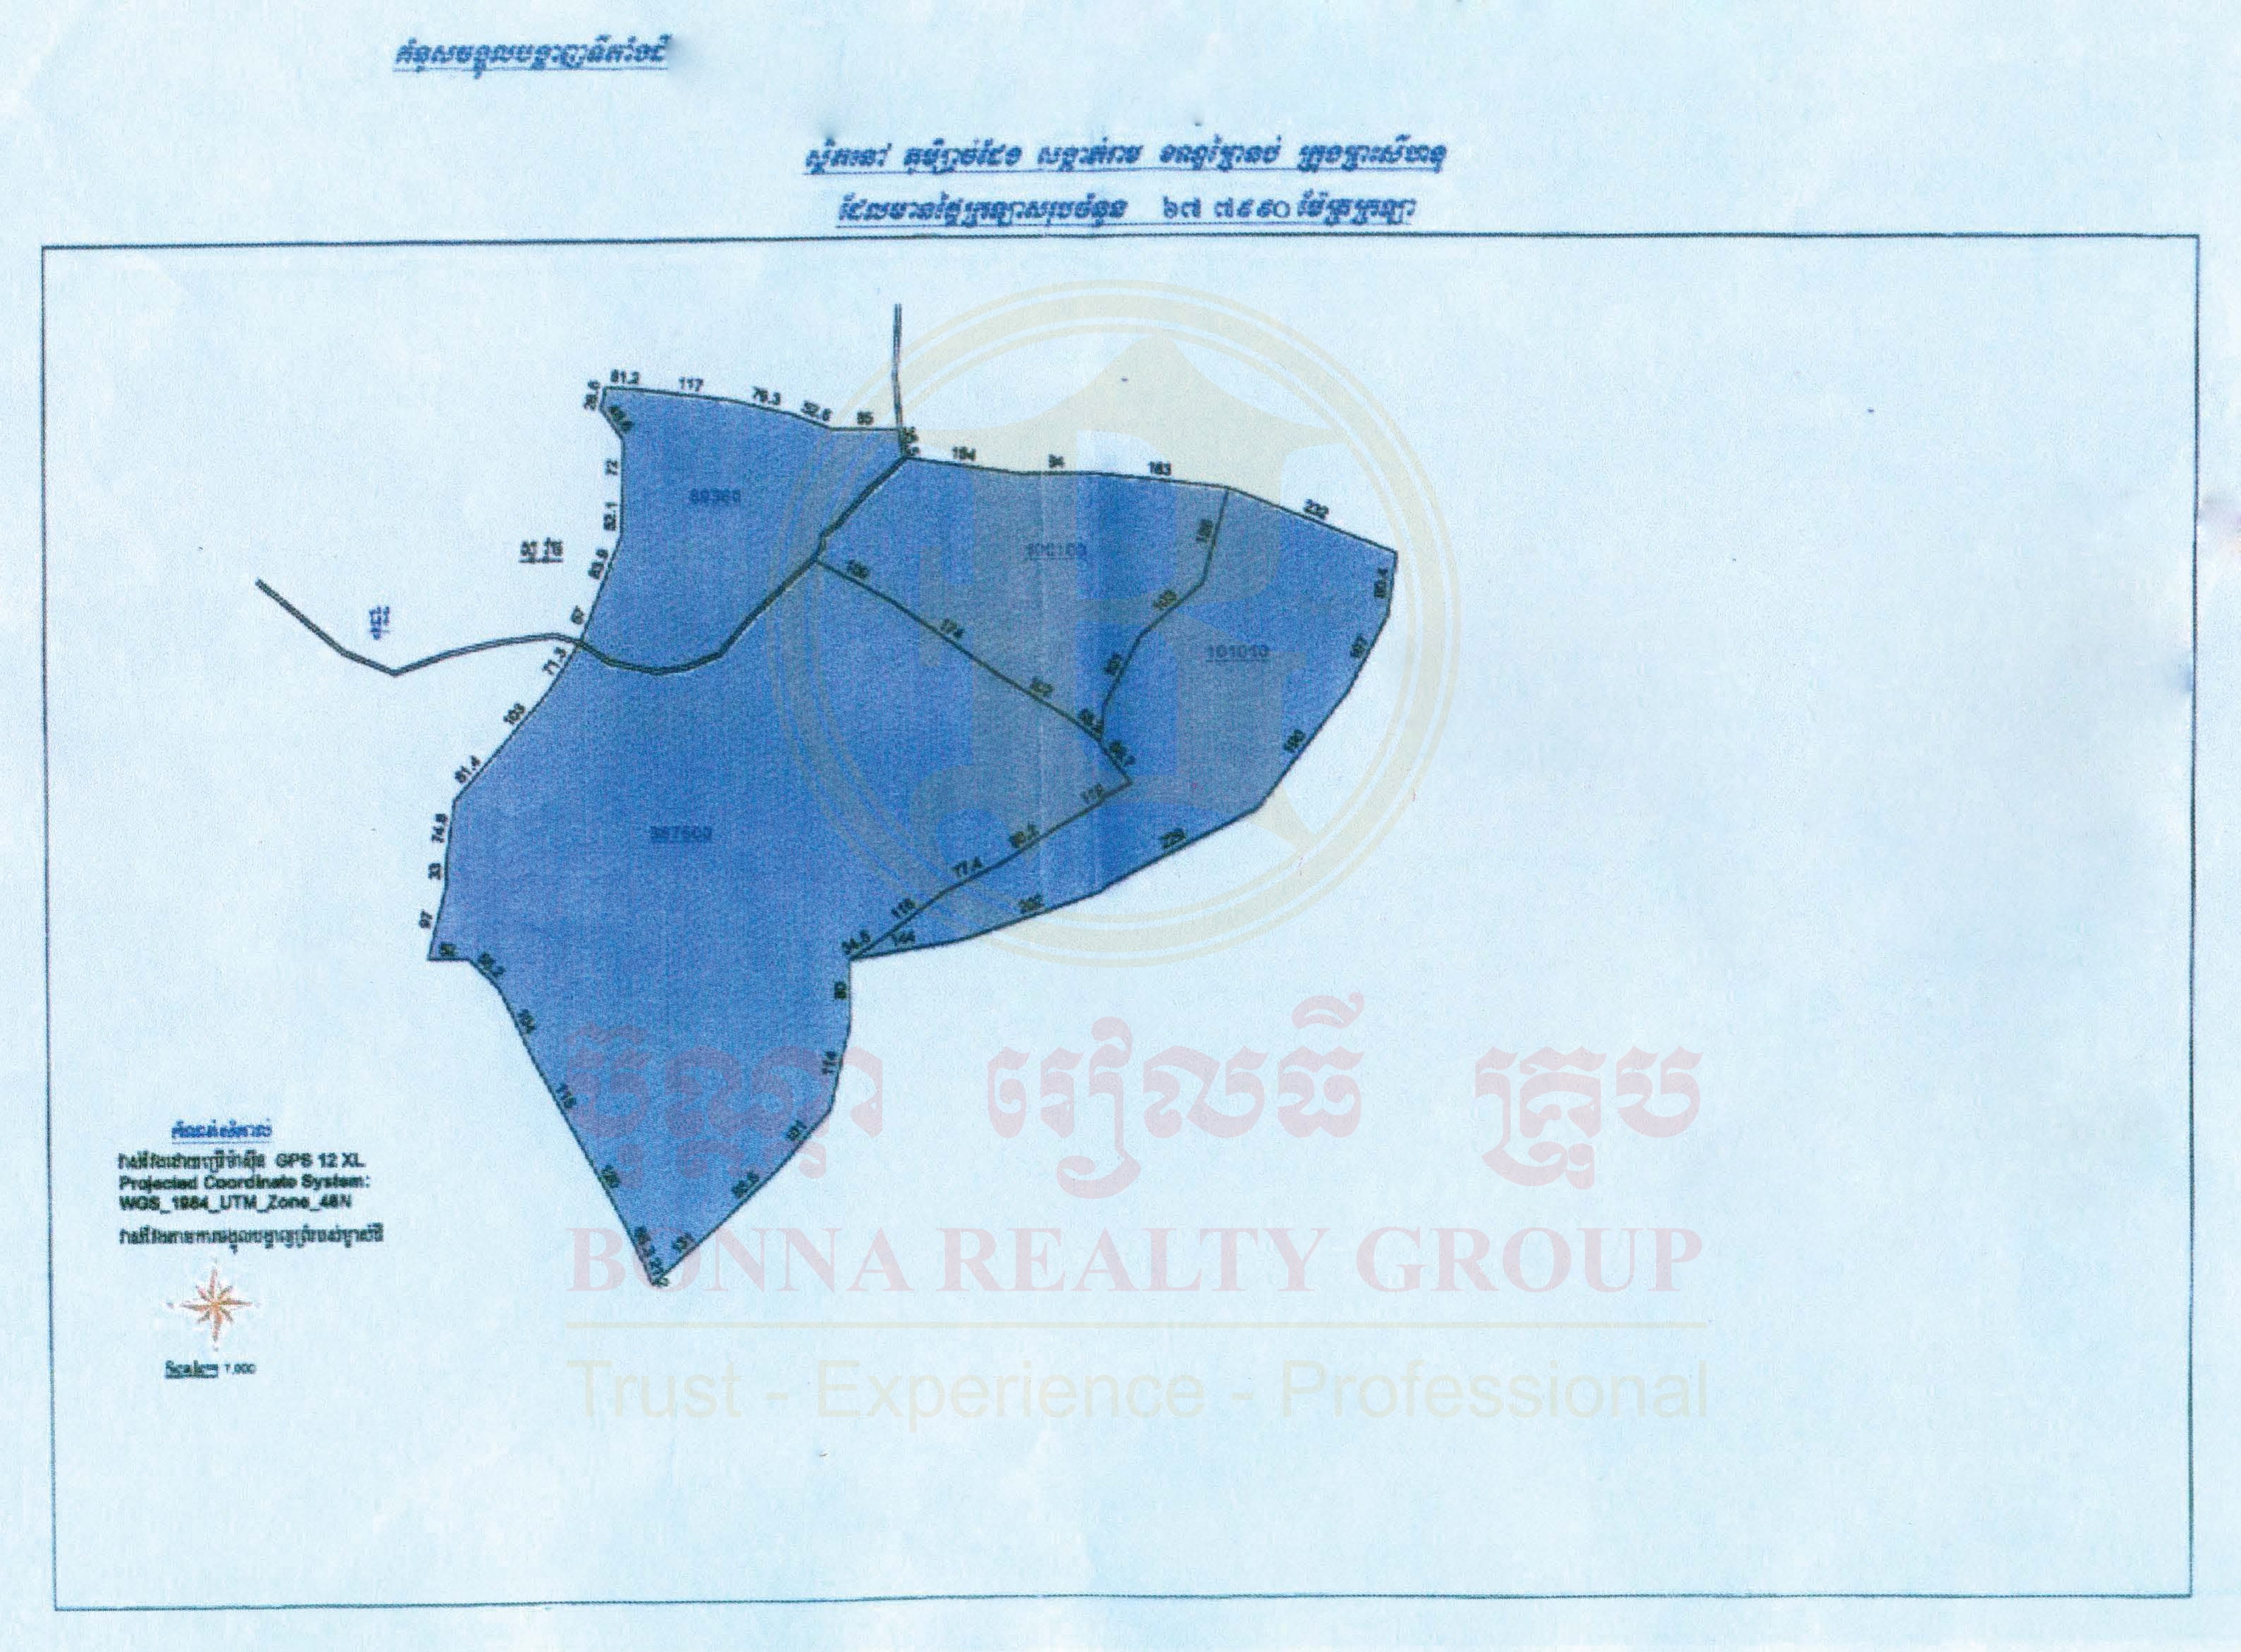 Land For Sale in Sangkat Ream – Phum Smachdeng